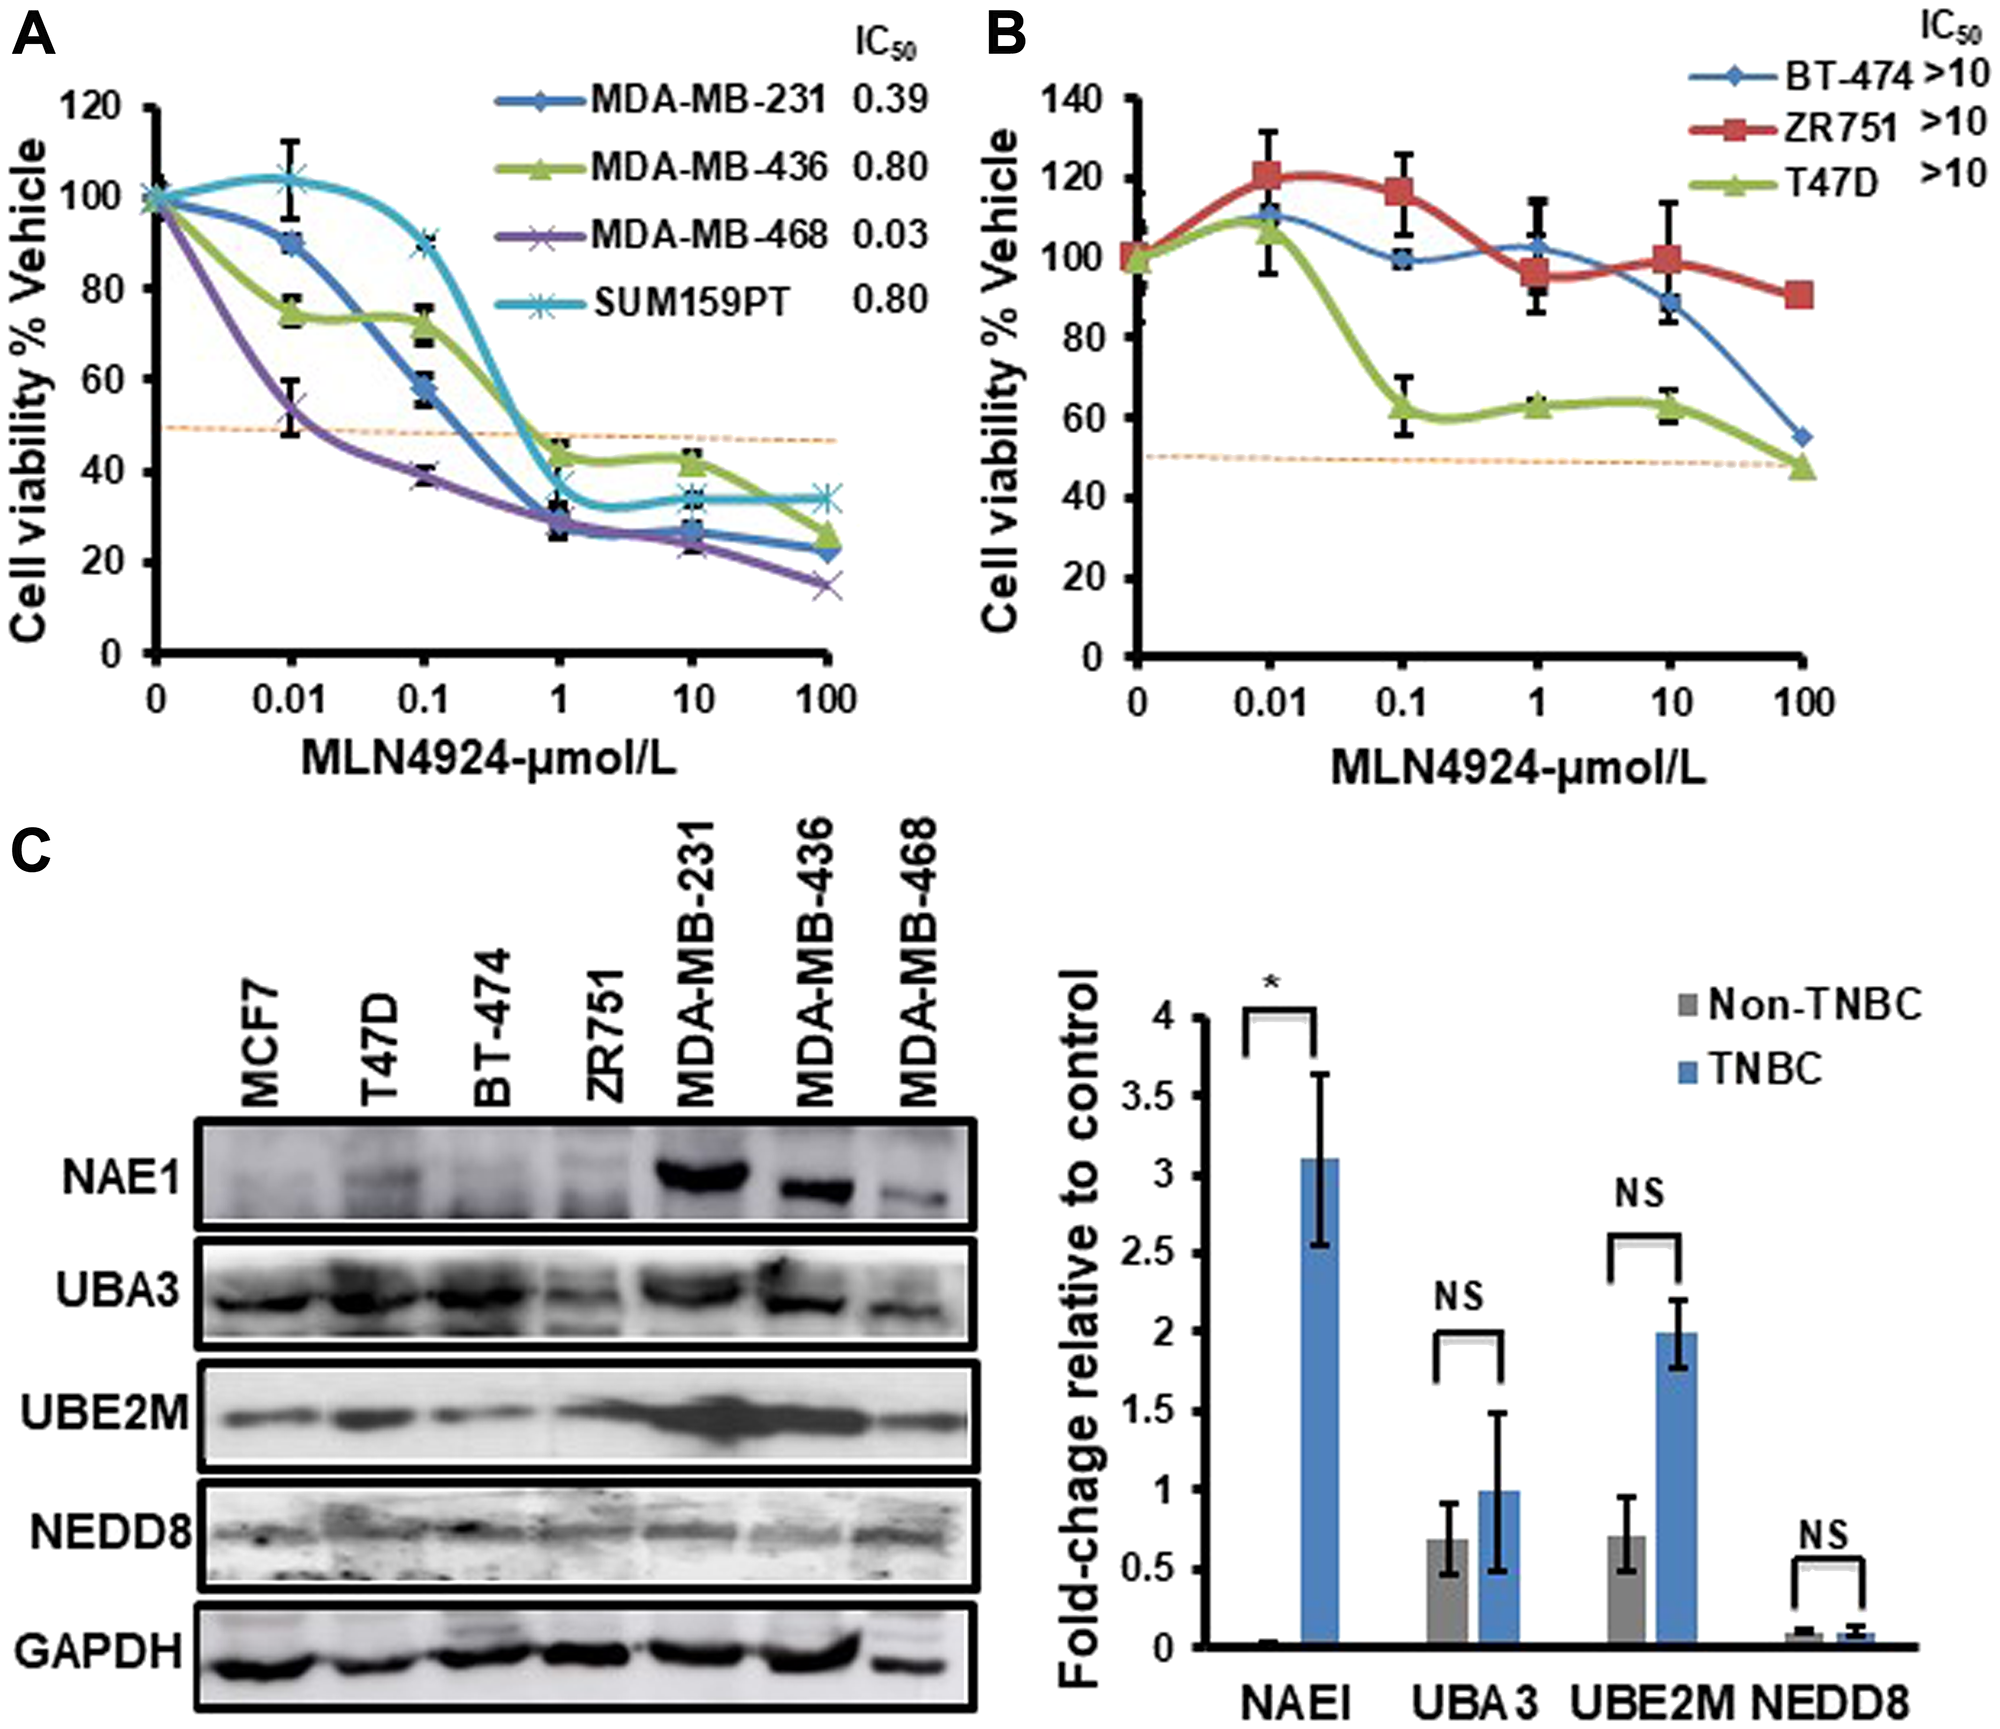 TNBC cells show increased sensitivity to MLN4924 compared to non-TNBC cells and overexpress NAE1.